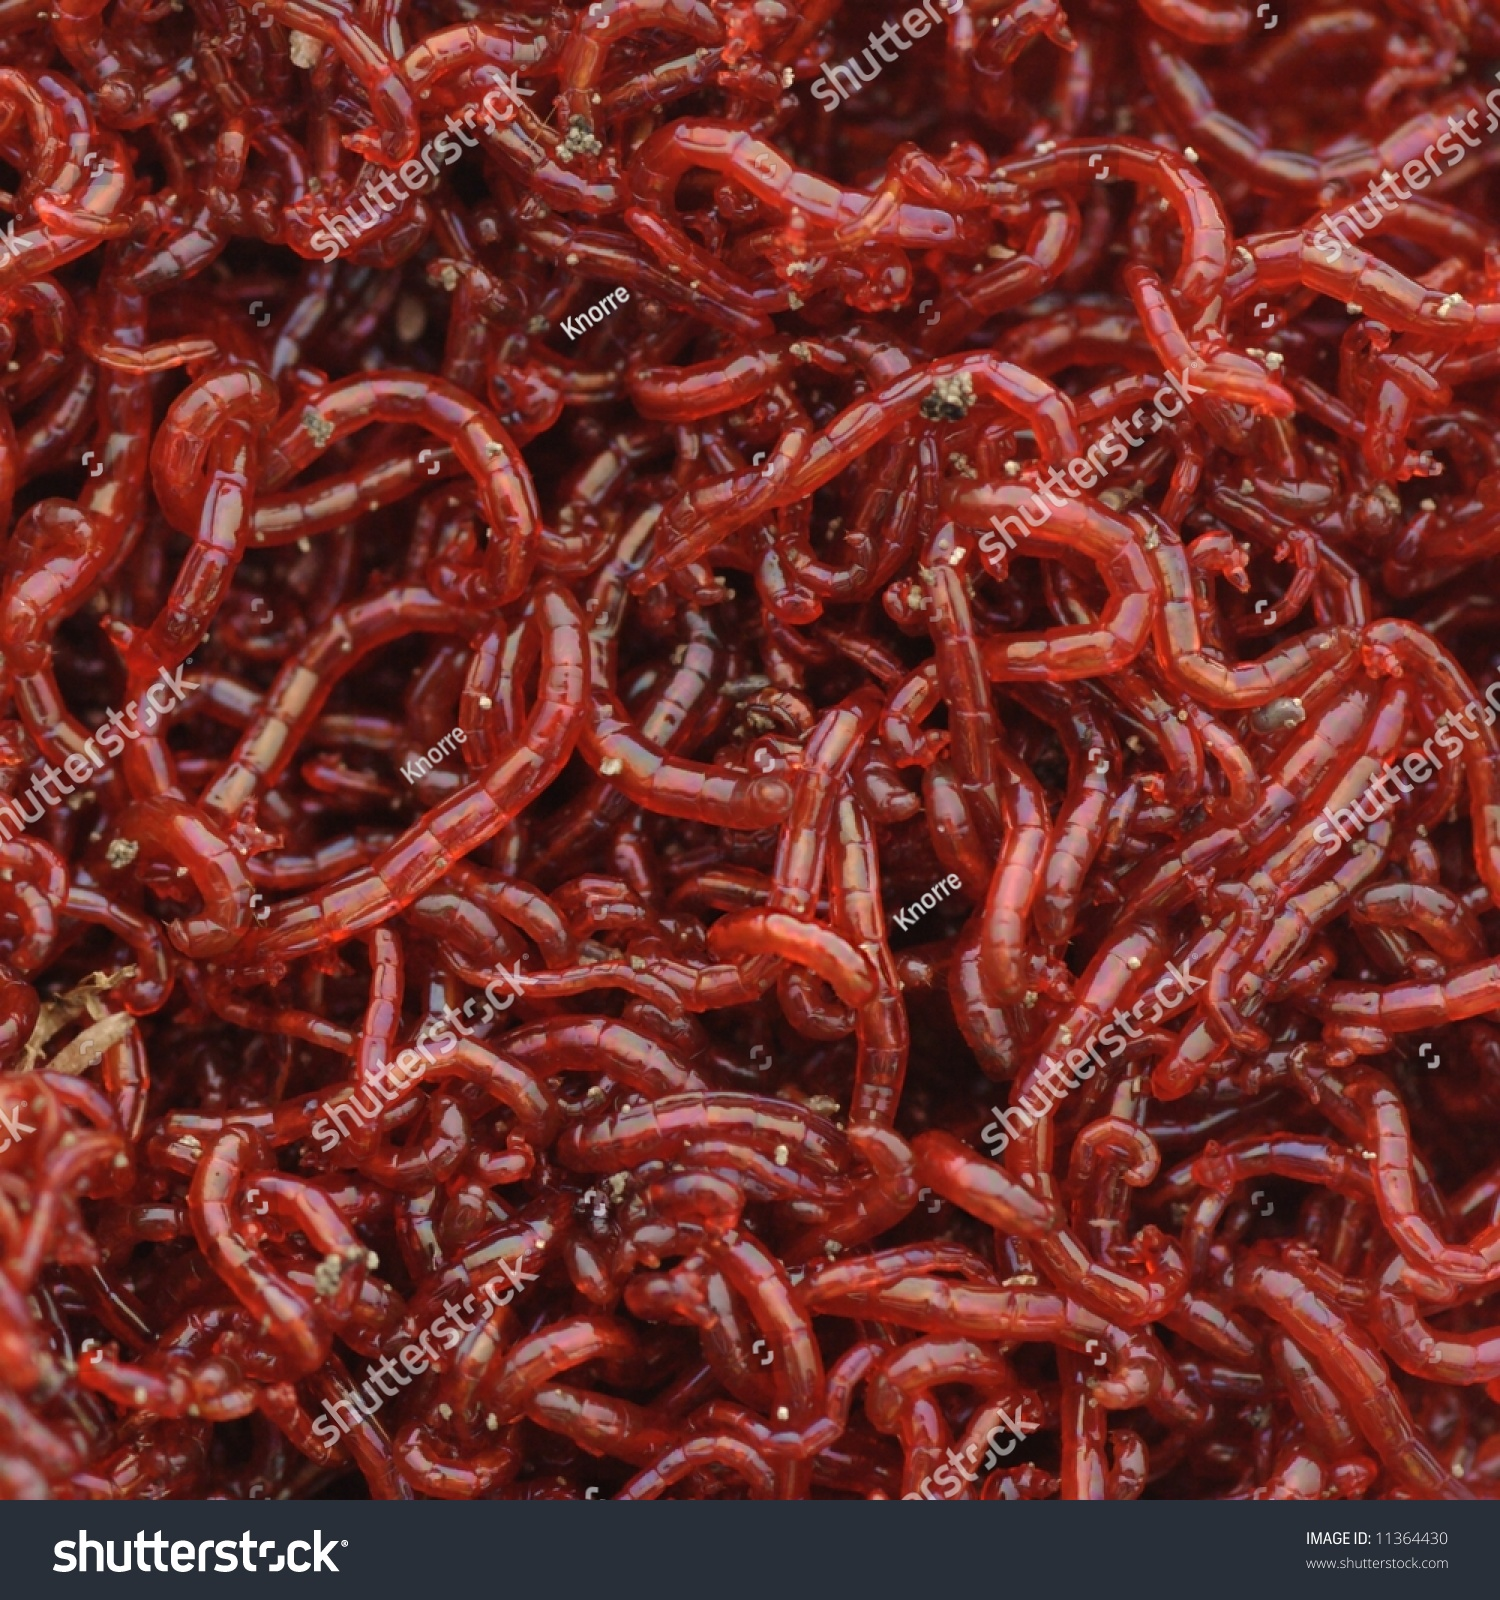 bloodworms midge larvae common life food stock photo 11364430, Fishing Bait